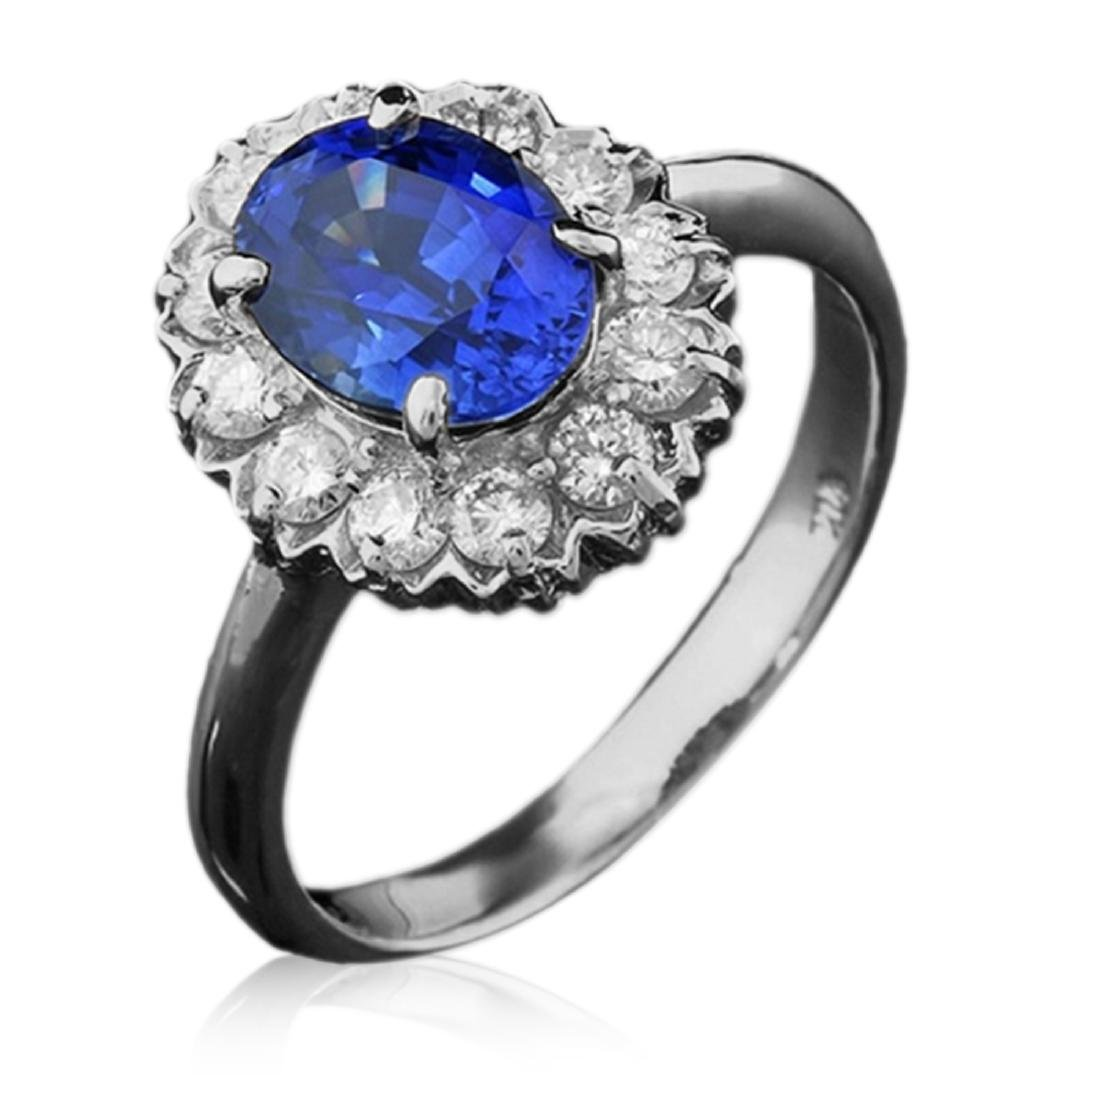 2.25 Carat Natural Sapphire 18K Solid White Gold